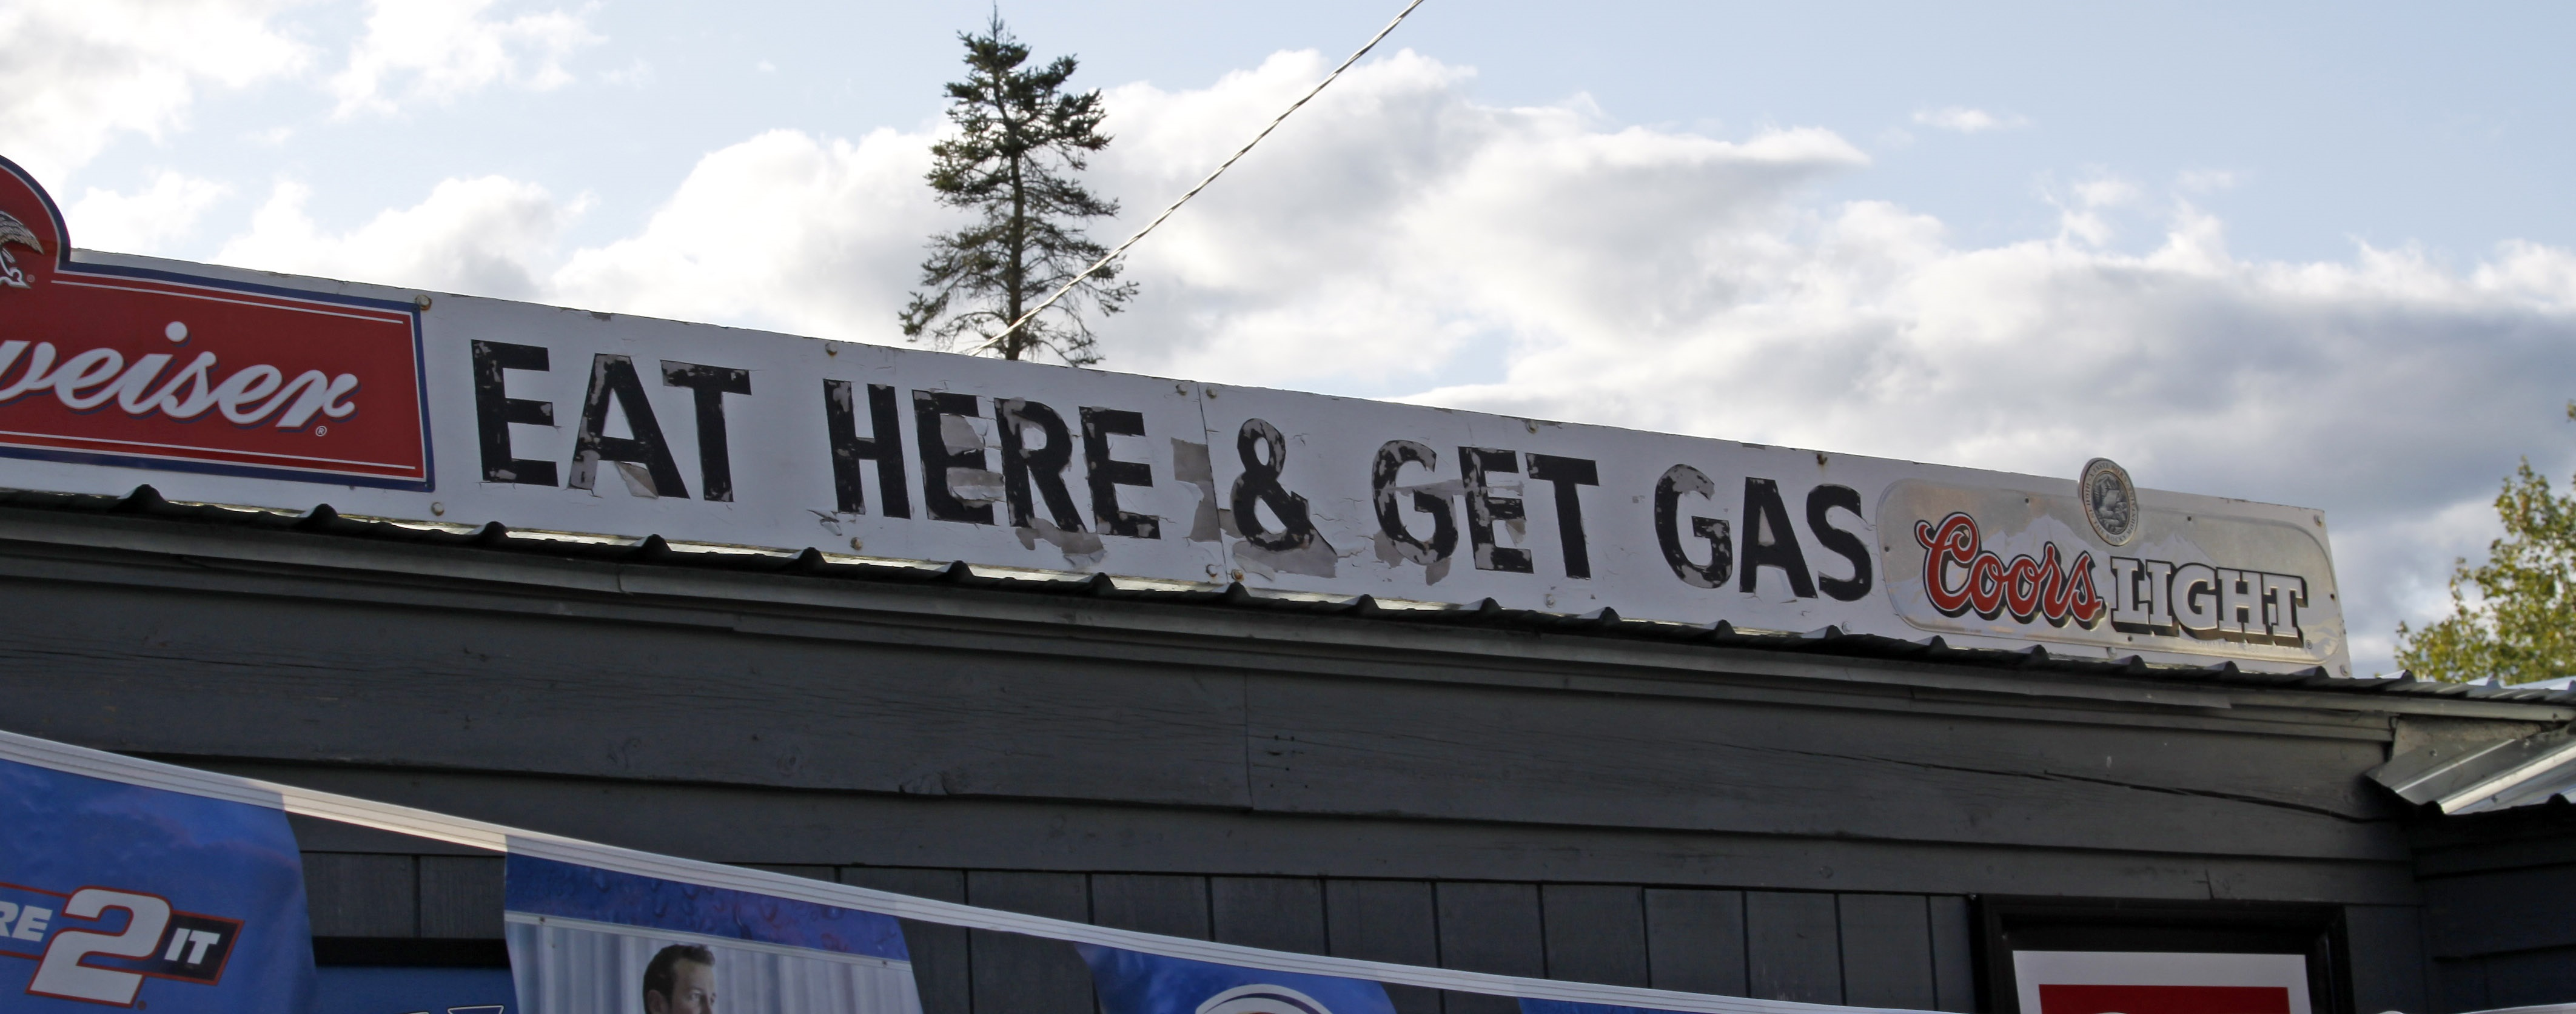 call-to-action: eat here and get gas